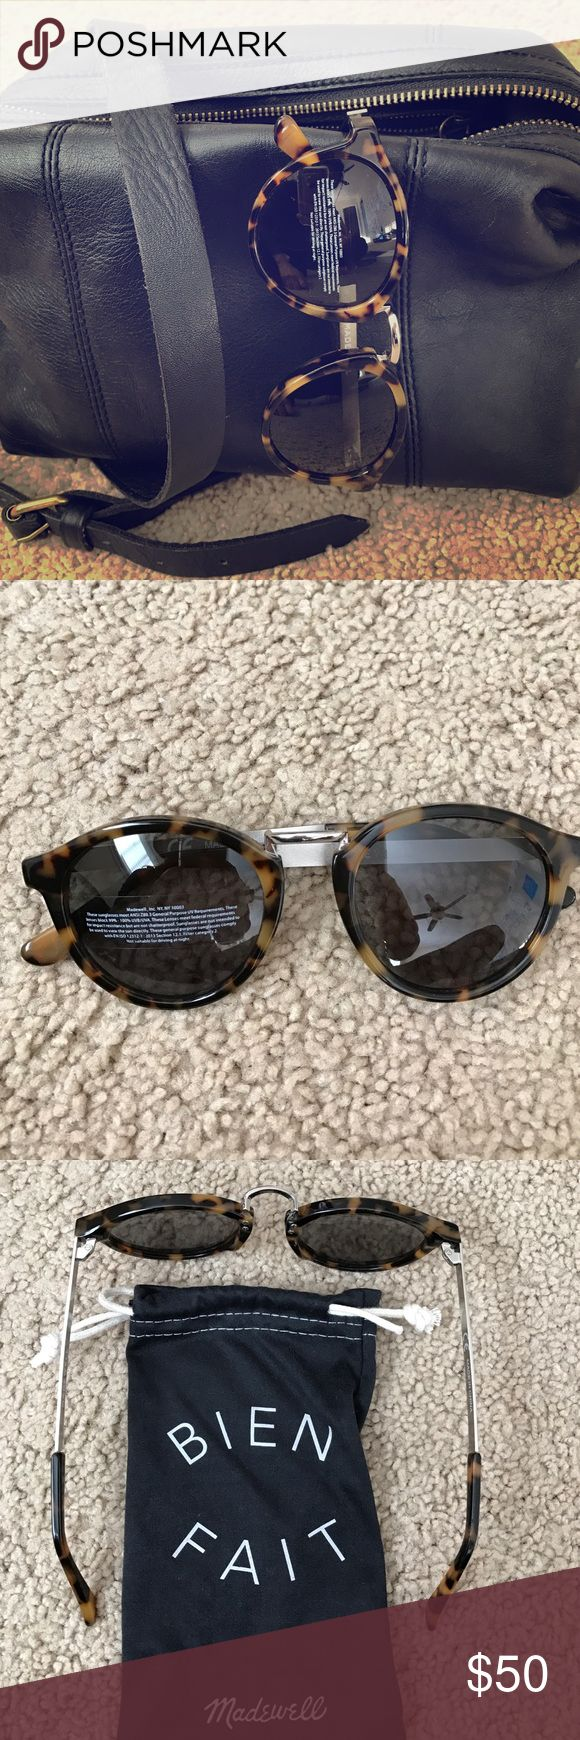 Madewell Indio Sunglasses Super popular and flattering sunglasses by madewell. NWOT. They come with the soft pouch shown in the last picture. Madewell Accessories Sunglasses